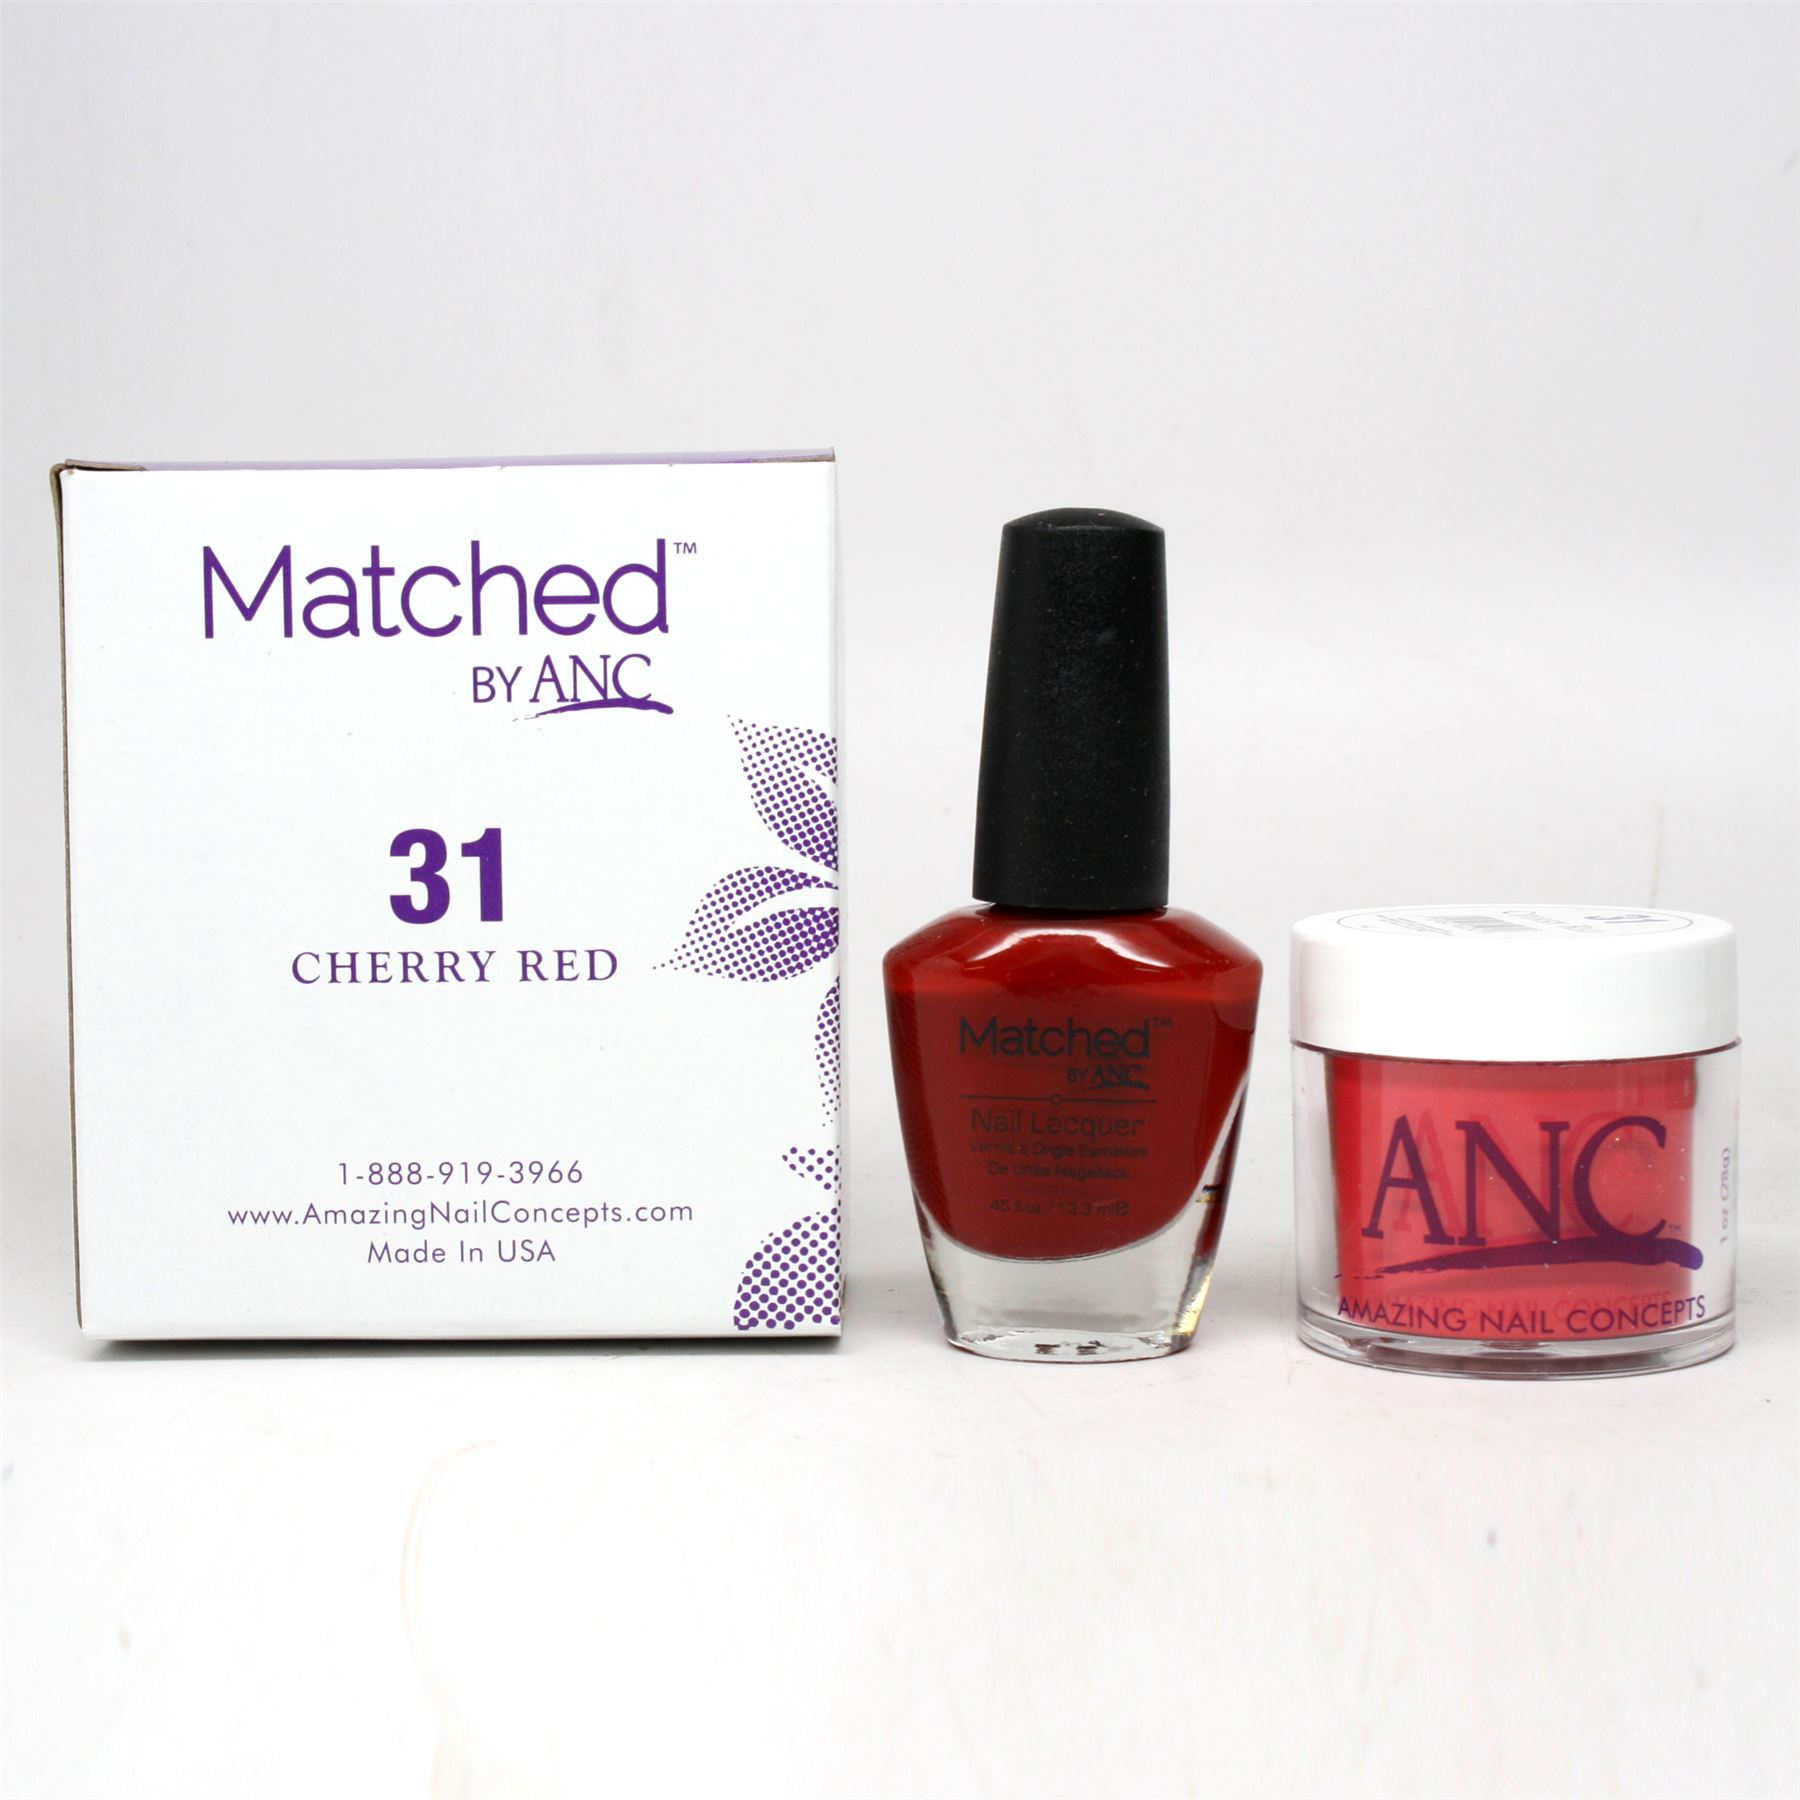 ANC Amazing Nail Concepts Matched Kit # 31 Cherry Red